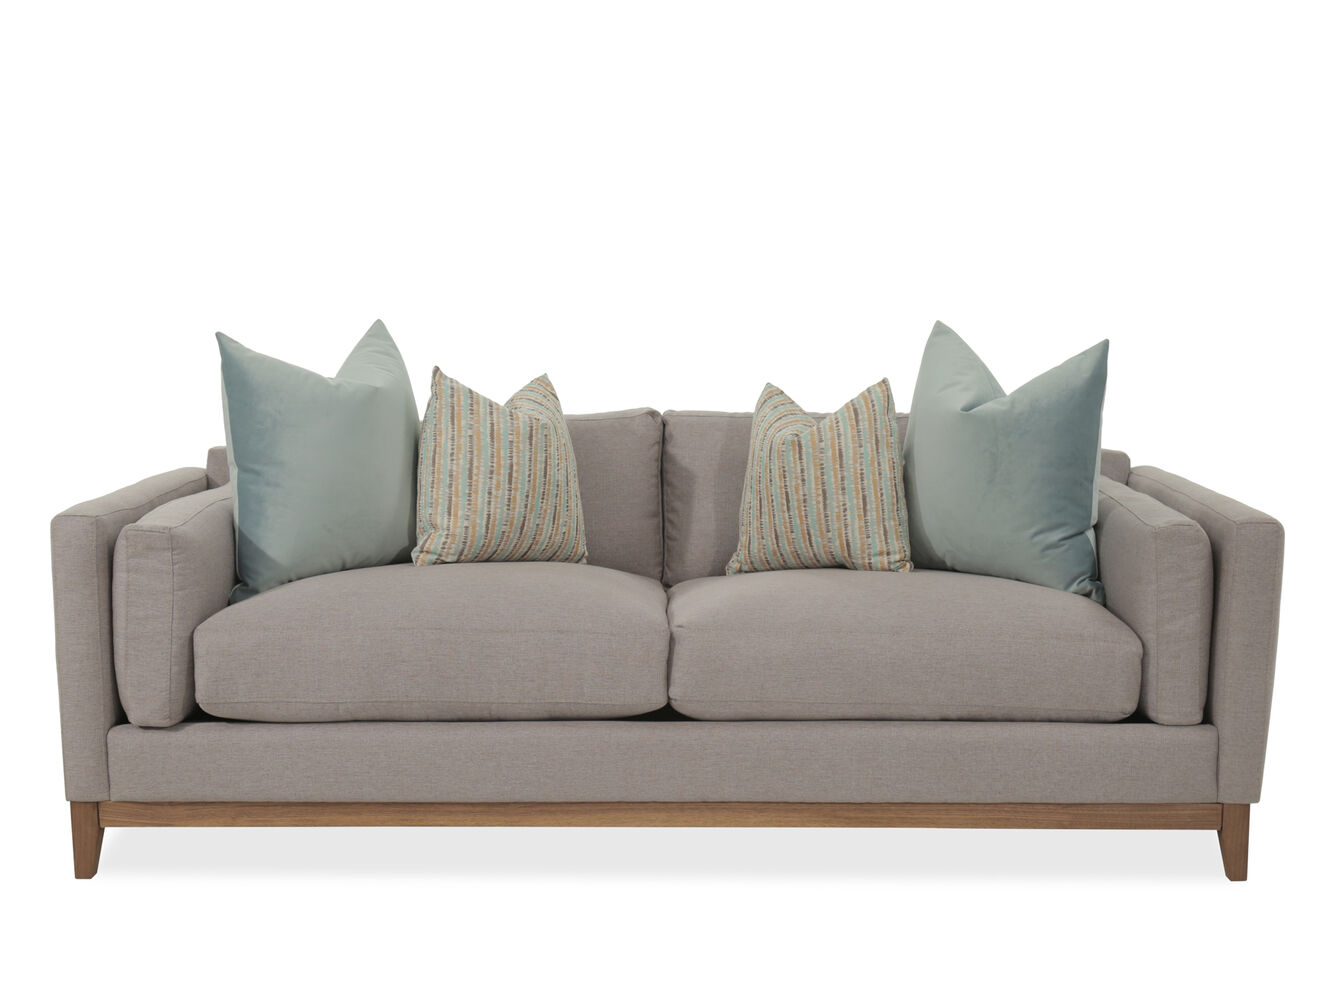 16 Mathis Brothers Sofa Sectionals Sofaset Kadavu